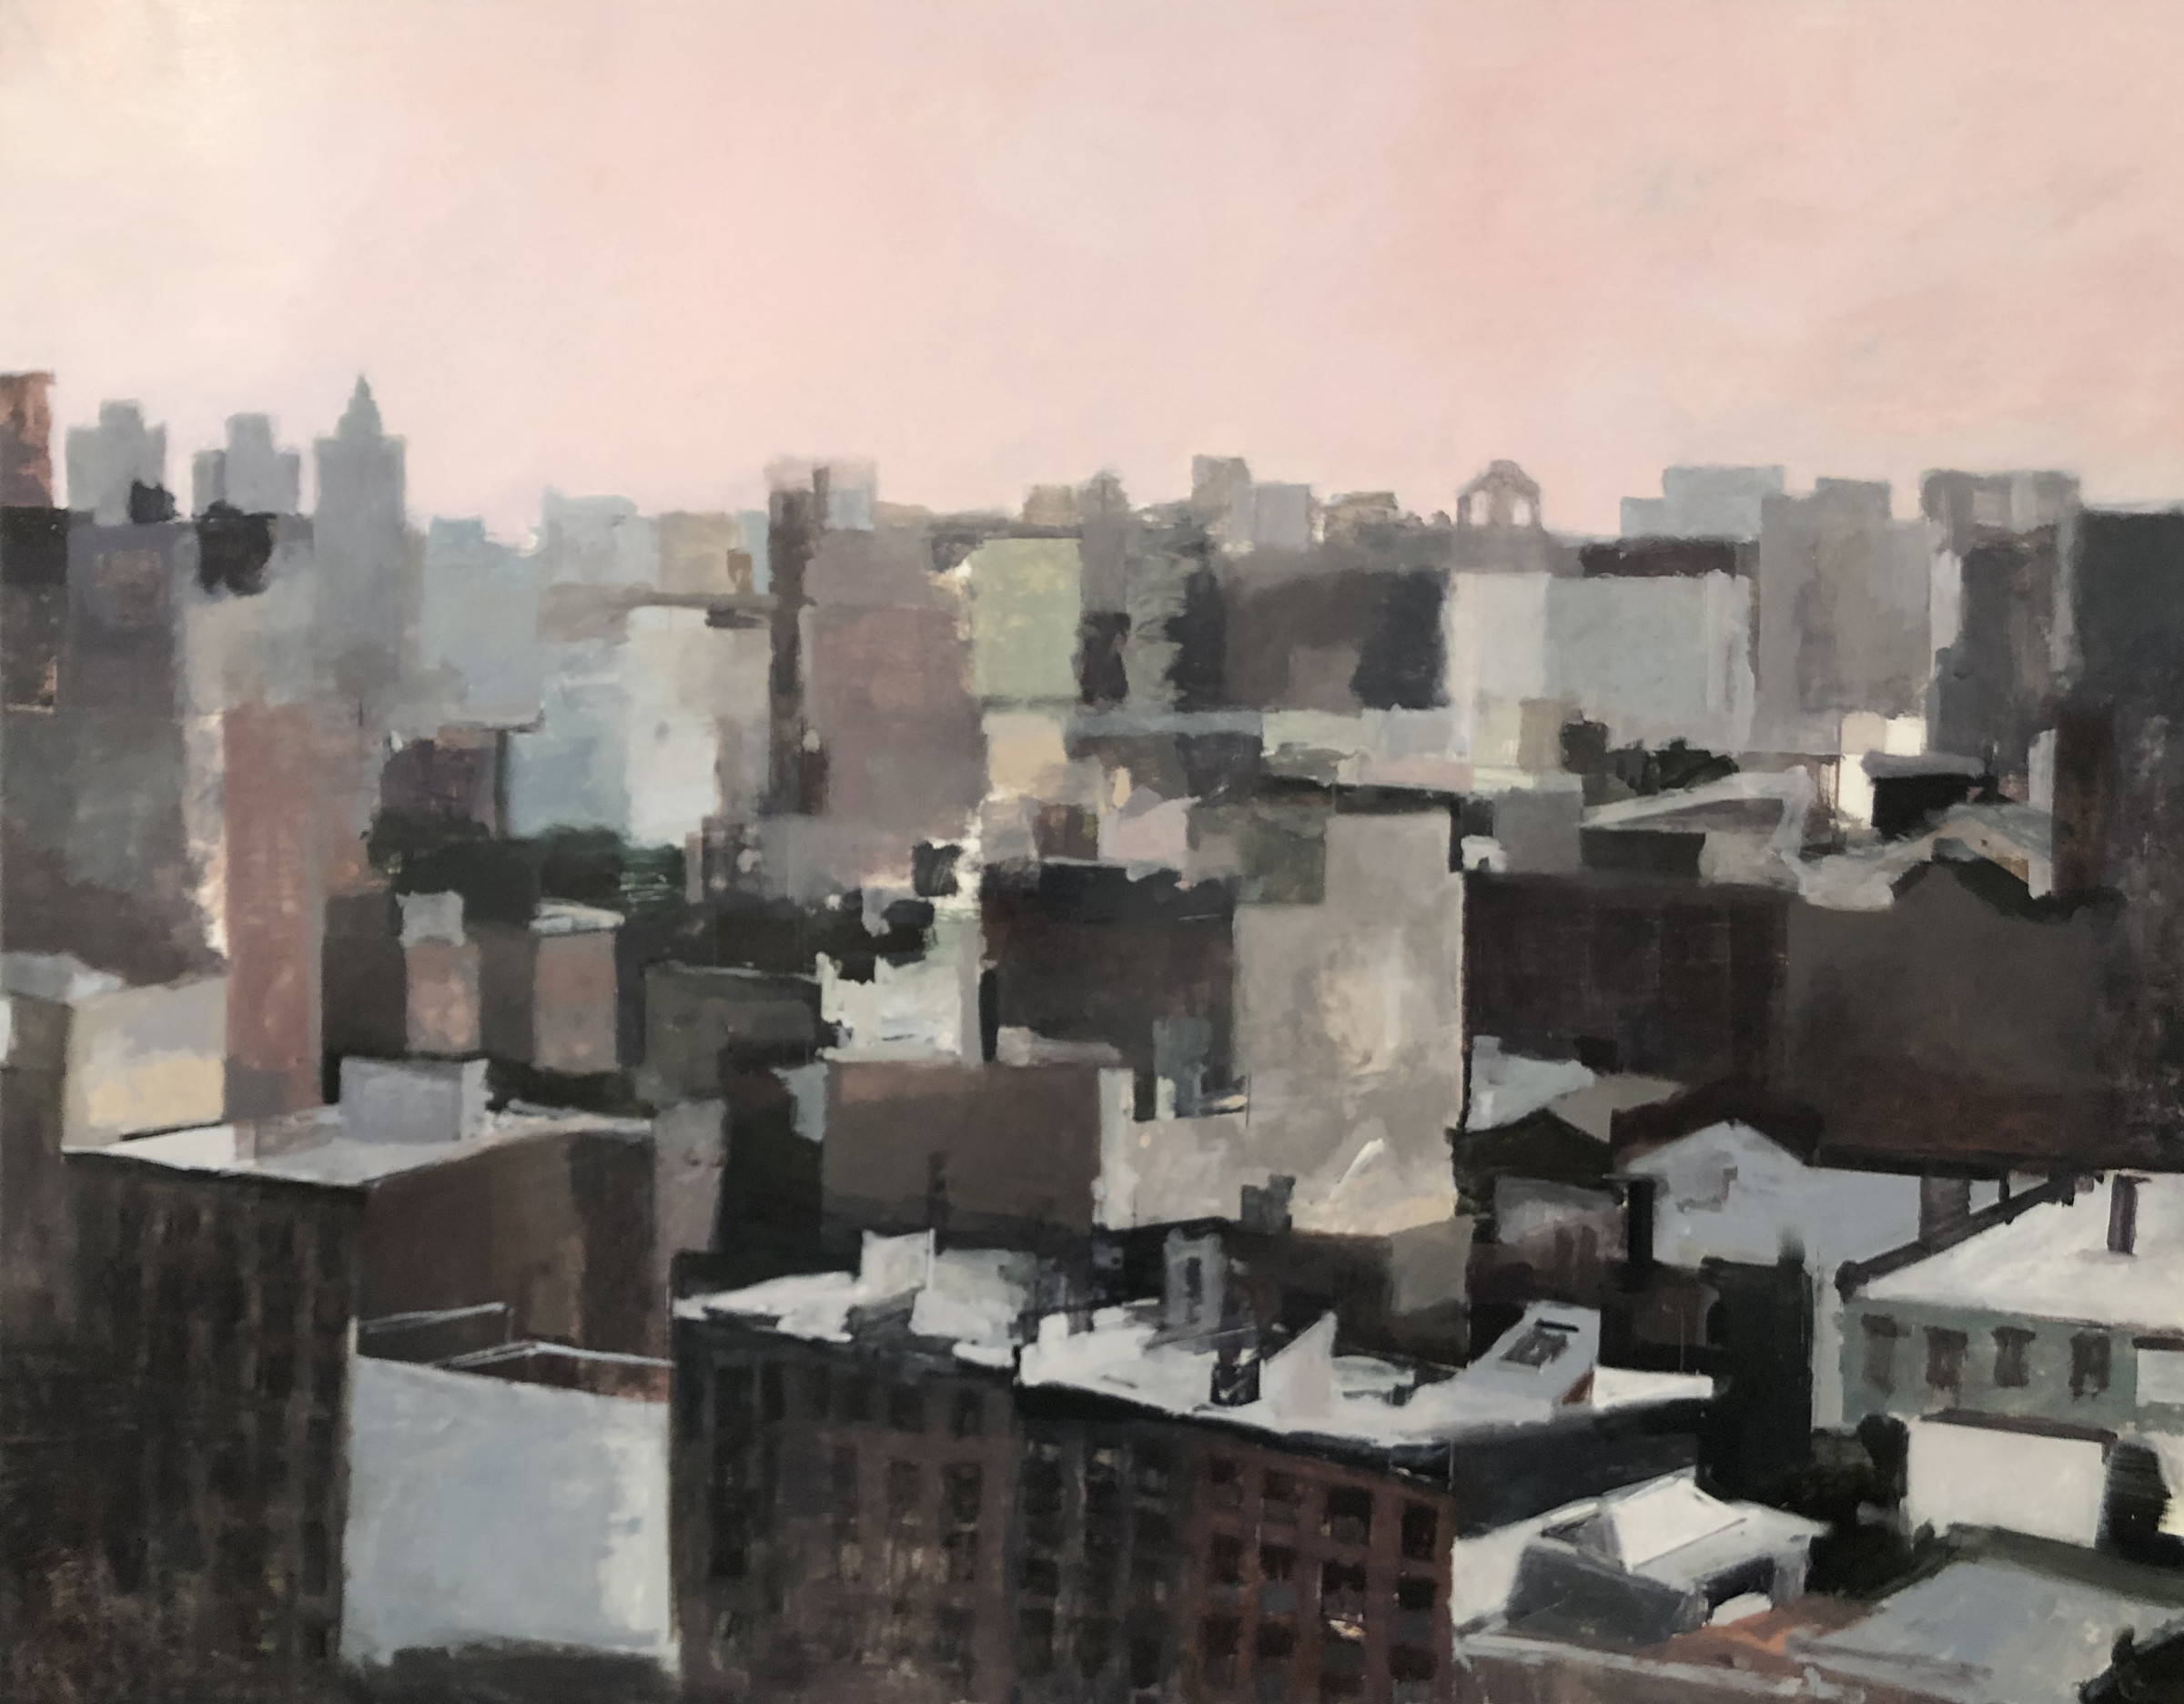 """<span class=""""link fancybox-details-link""""><a href=""""/artists/56-hadas-tal/works/703-hadas-tal-washington-heights/"""">View Detail Page</a></span><div class=""""artist""""><strong>Hadas Tal</strong></div> <div class=""""title""""><em>Washington Heights </em></div> <div class=""""medium"""">Oil on Wood Panel </div> <div class=""""dimensions"""">48 x 60 inches </div>"""